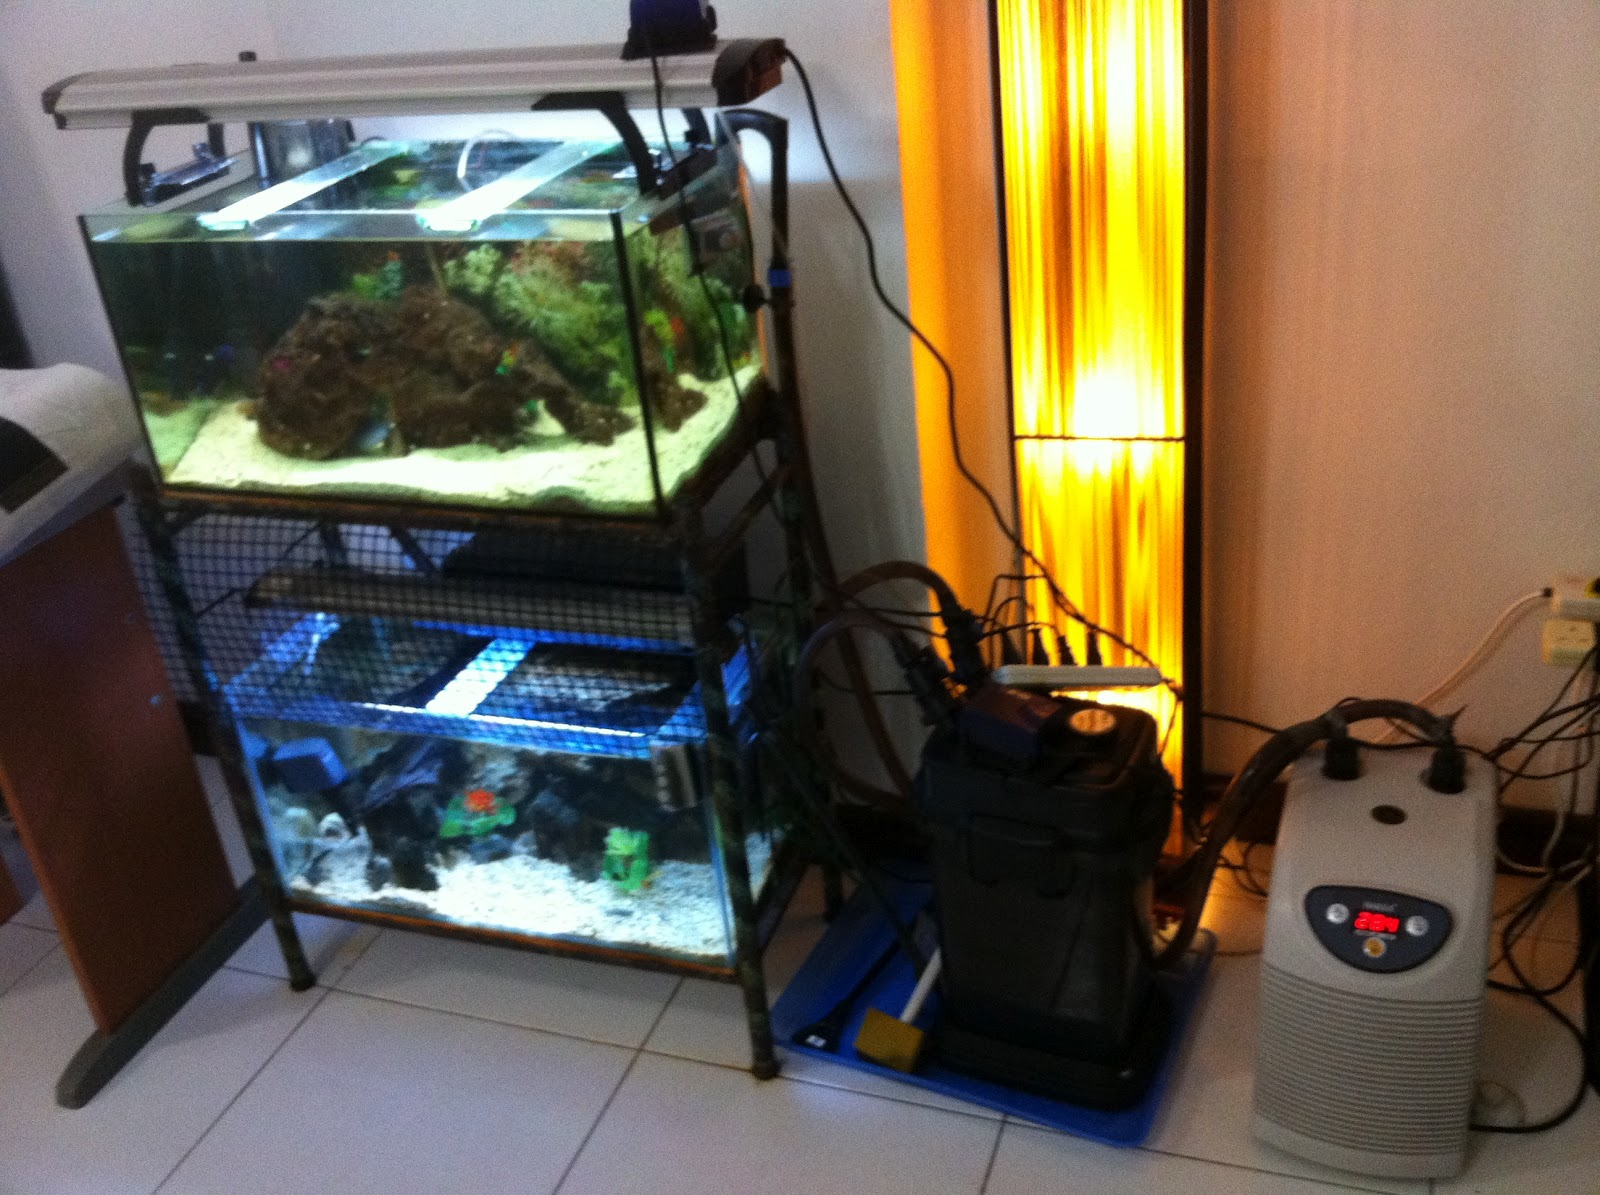 Fish aquarium in johor bahru - Reef Tank With Some Coral Added